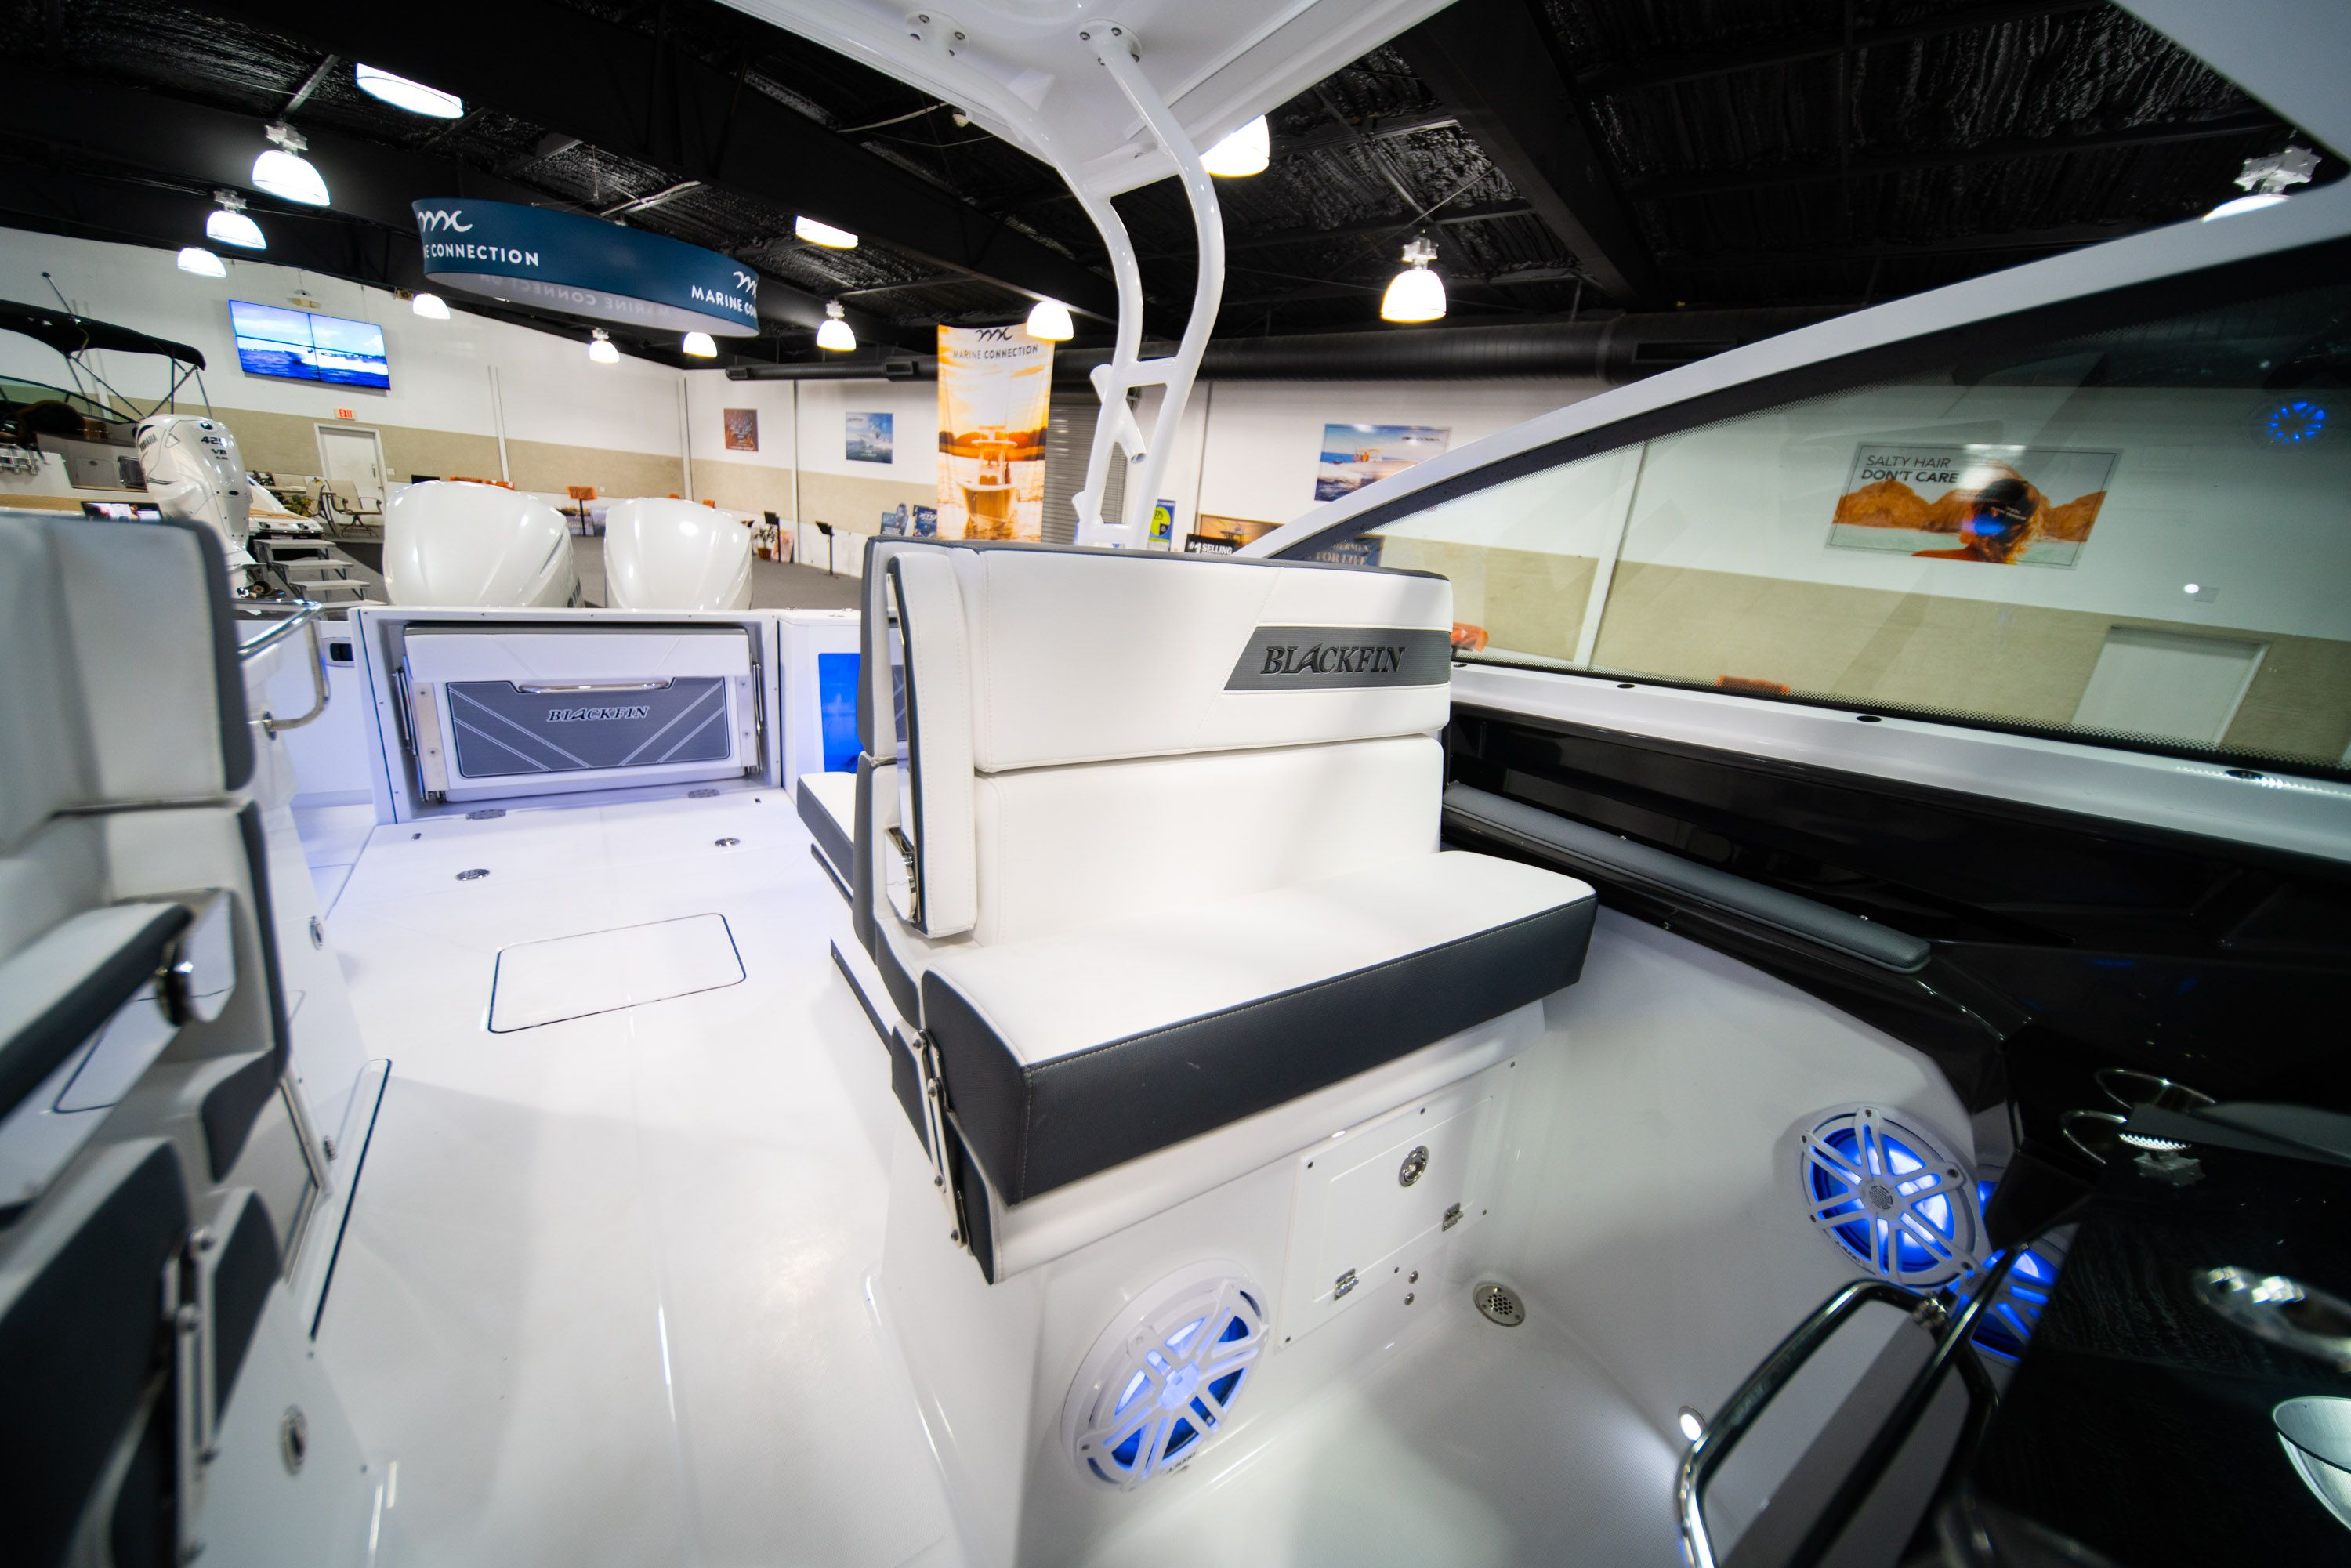 Thumbnail 32 for New 2020 Blackfin 272DC Dual Console boat for sale in West Palm Beach, FL